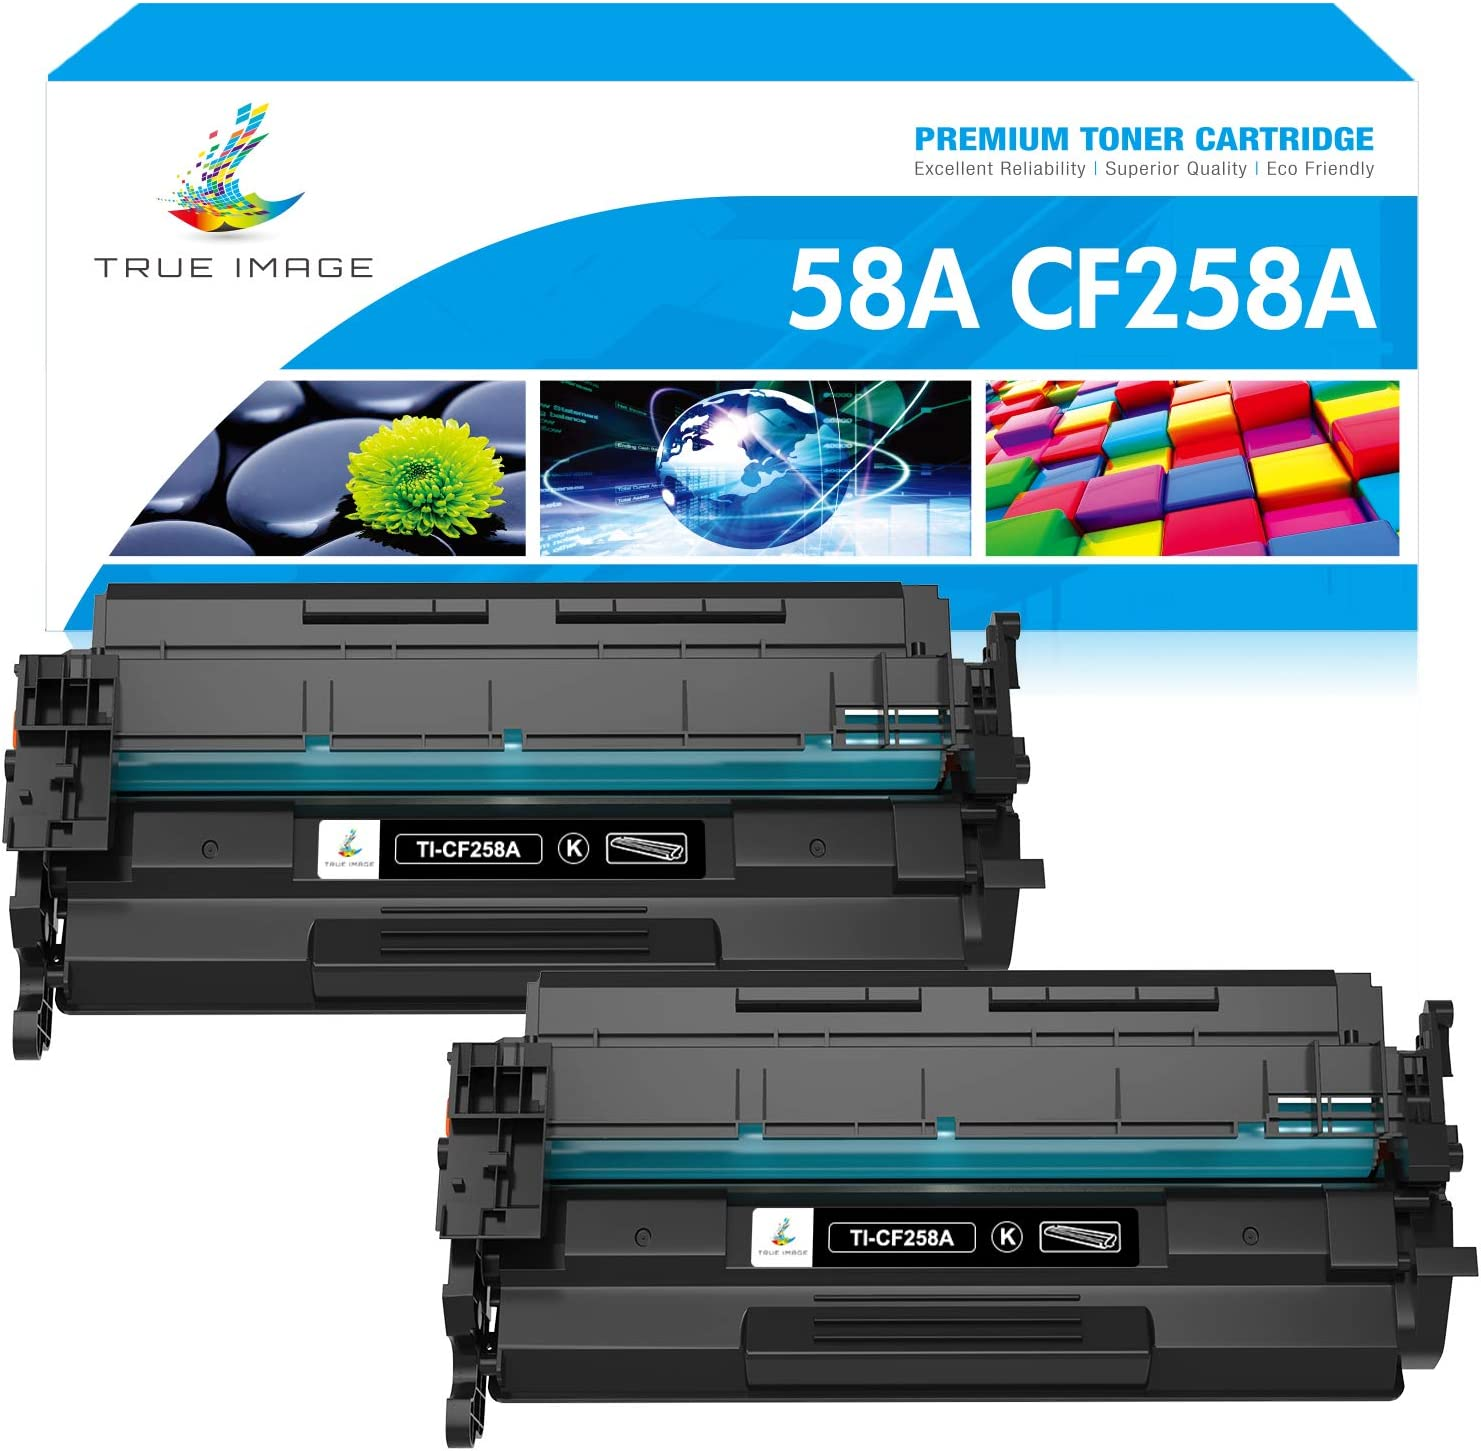 True Image Compatible Toner Cartridge Replacement for HP 58A CF258A 58X CF258X M428fdw HP Laserjet Pro M404n M404dn M404dw MFP M428fdn M428dw M304 M404 M428 Printer Toner (Black, 2-Pack)